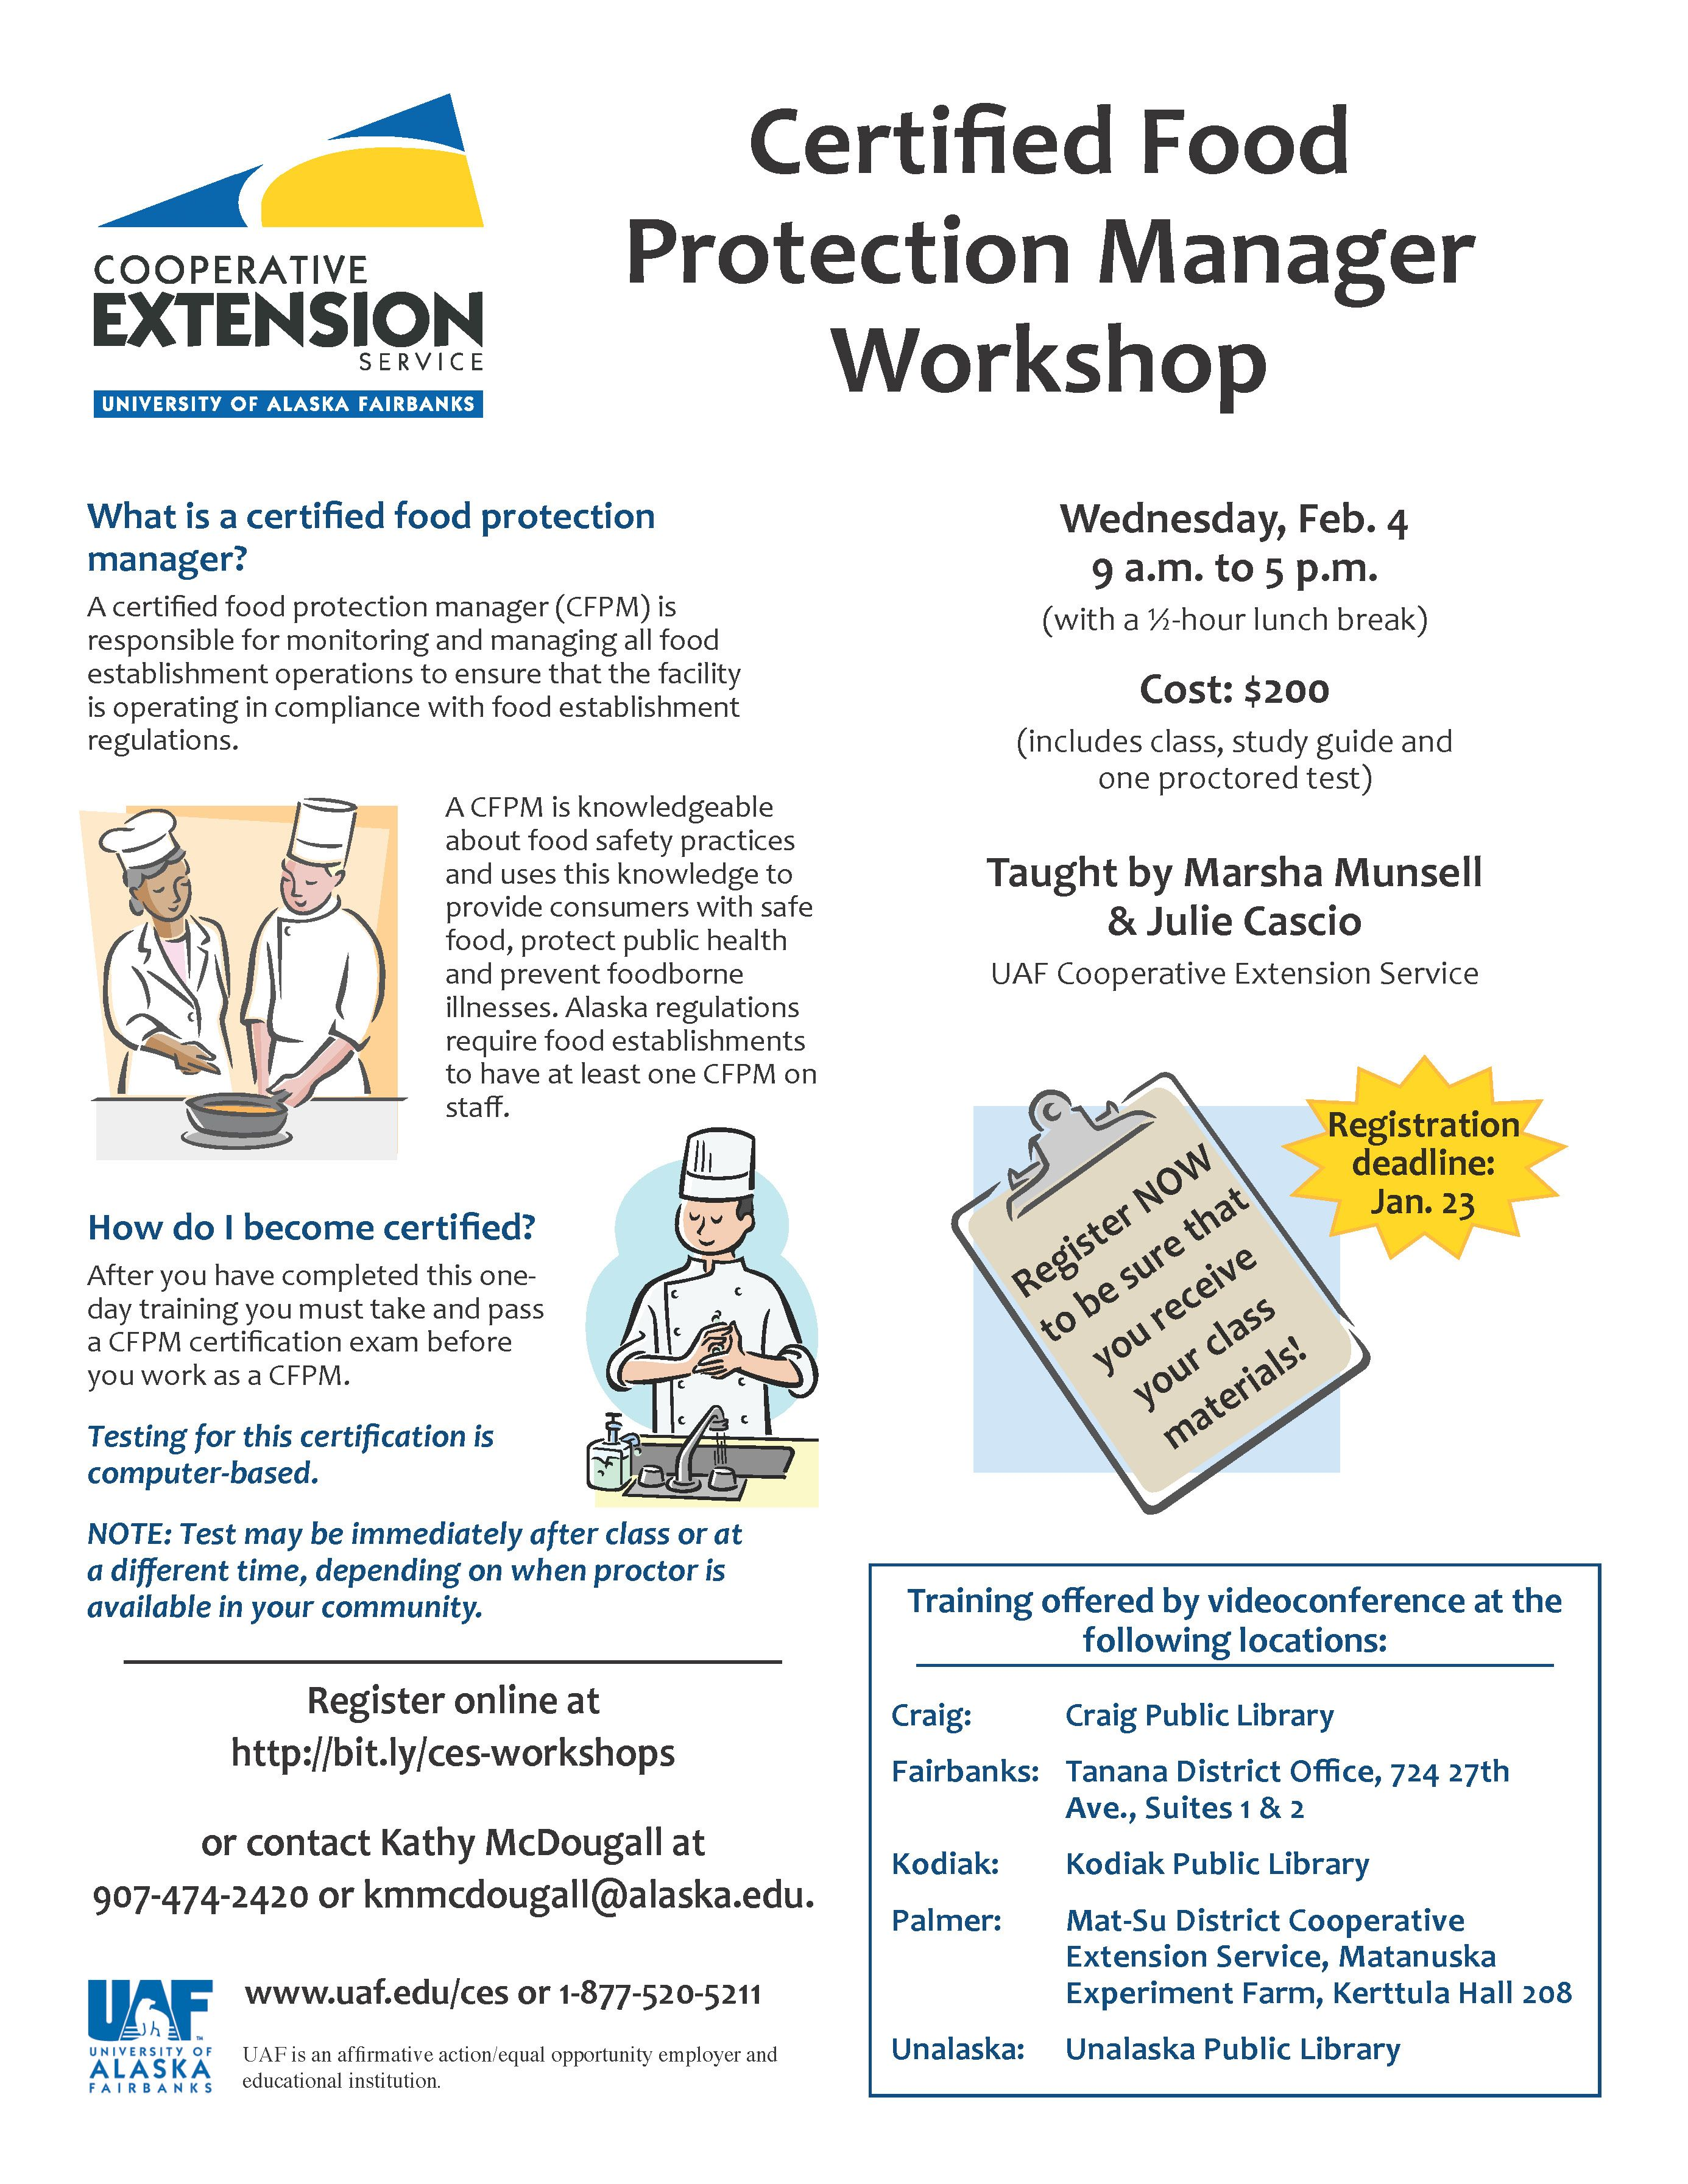 Certified food protection manager workshop february 4 2015 uaf certified food protection manager workshop february 4 2015 xflitez Gallery